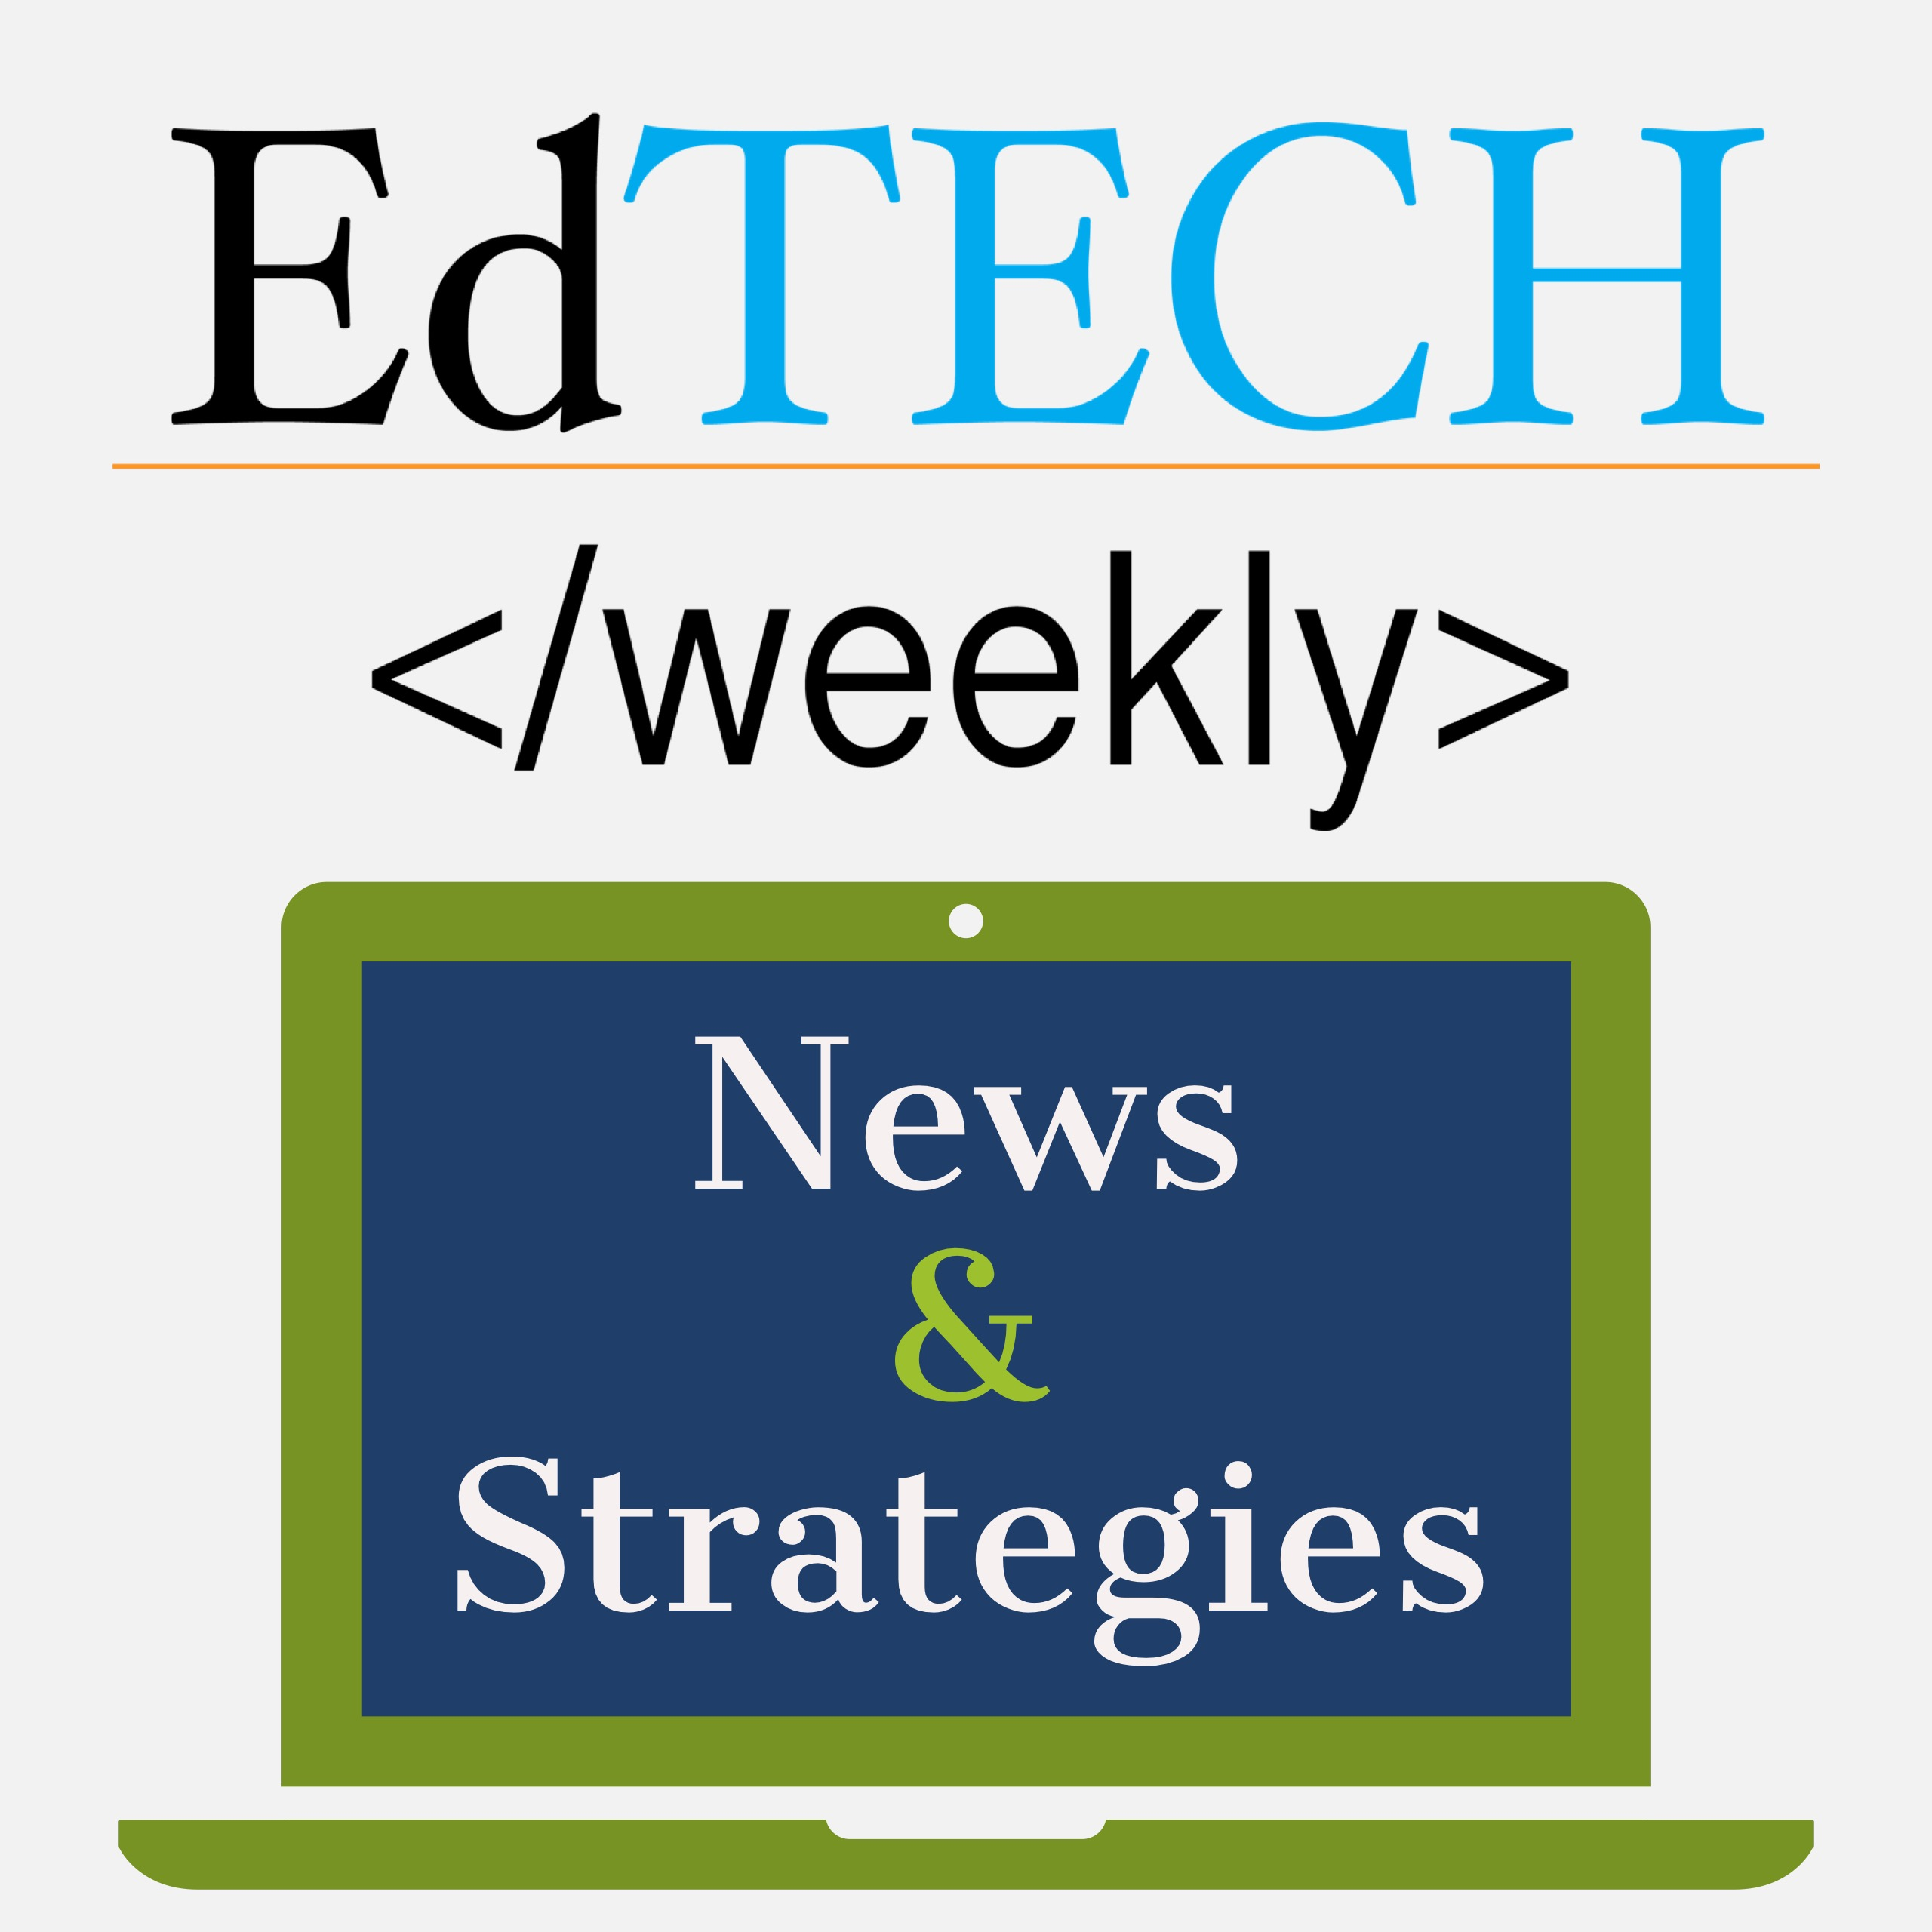 ETW - Episode 107 - Responsible Ed Tech